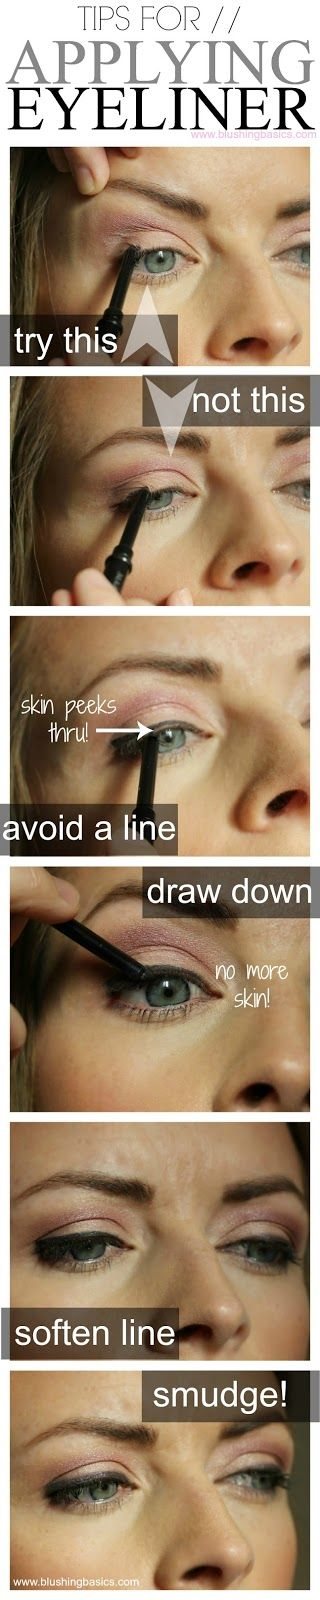 Tips for perfect pencil eyeliner via @Amelia R. Sánchez R. Sánchez Rosales Sánchez Rosales Sánchez masdin Basics